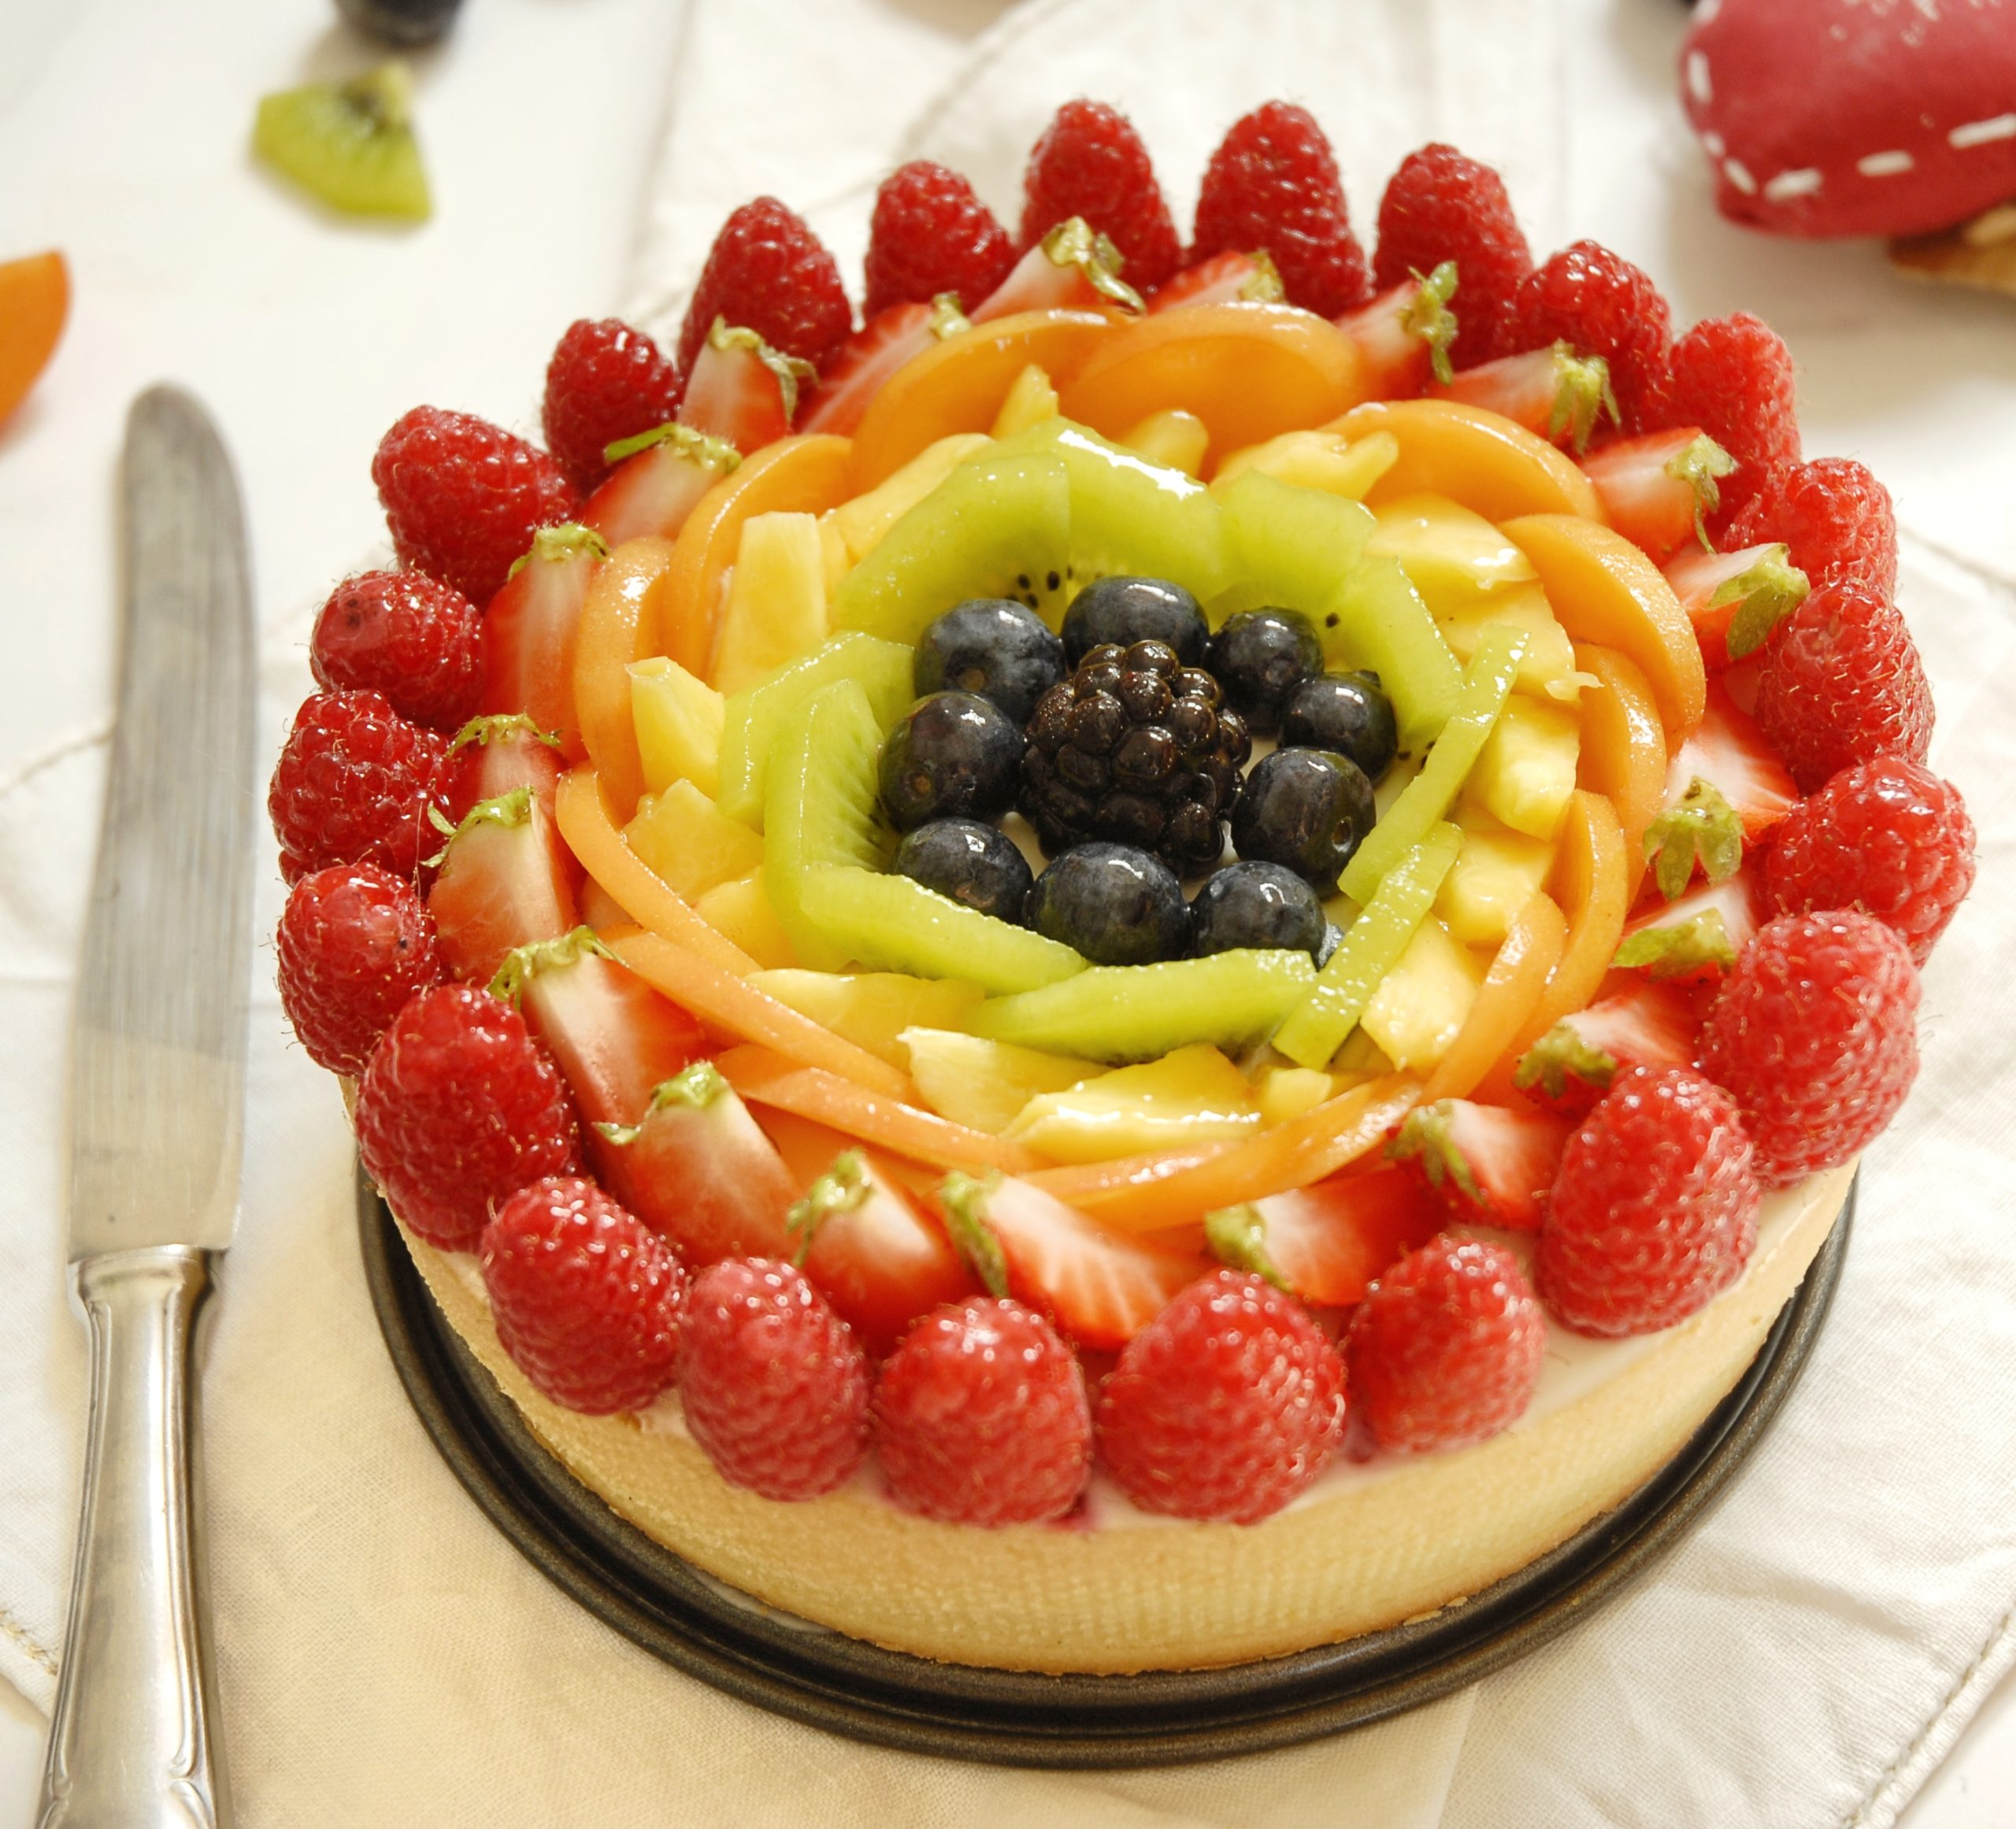 Crostata cheesecake arcobaleno